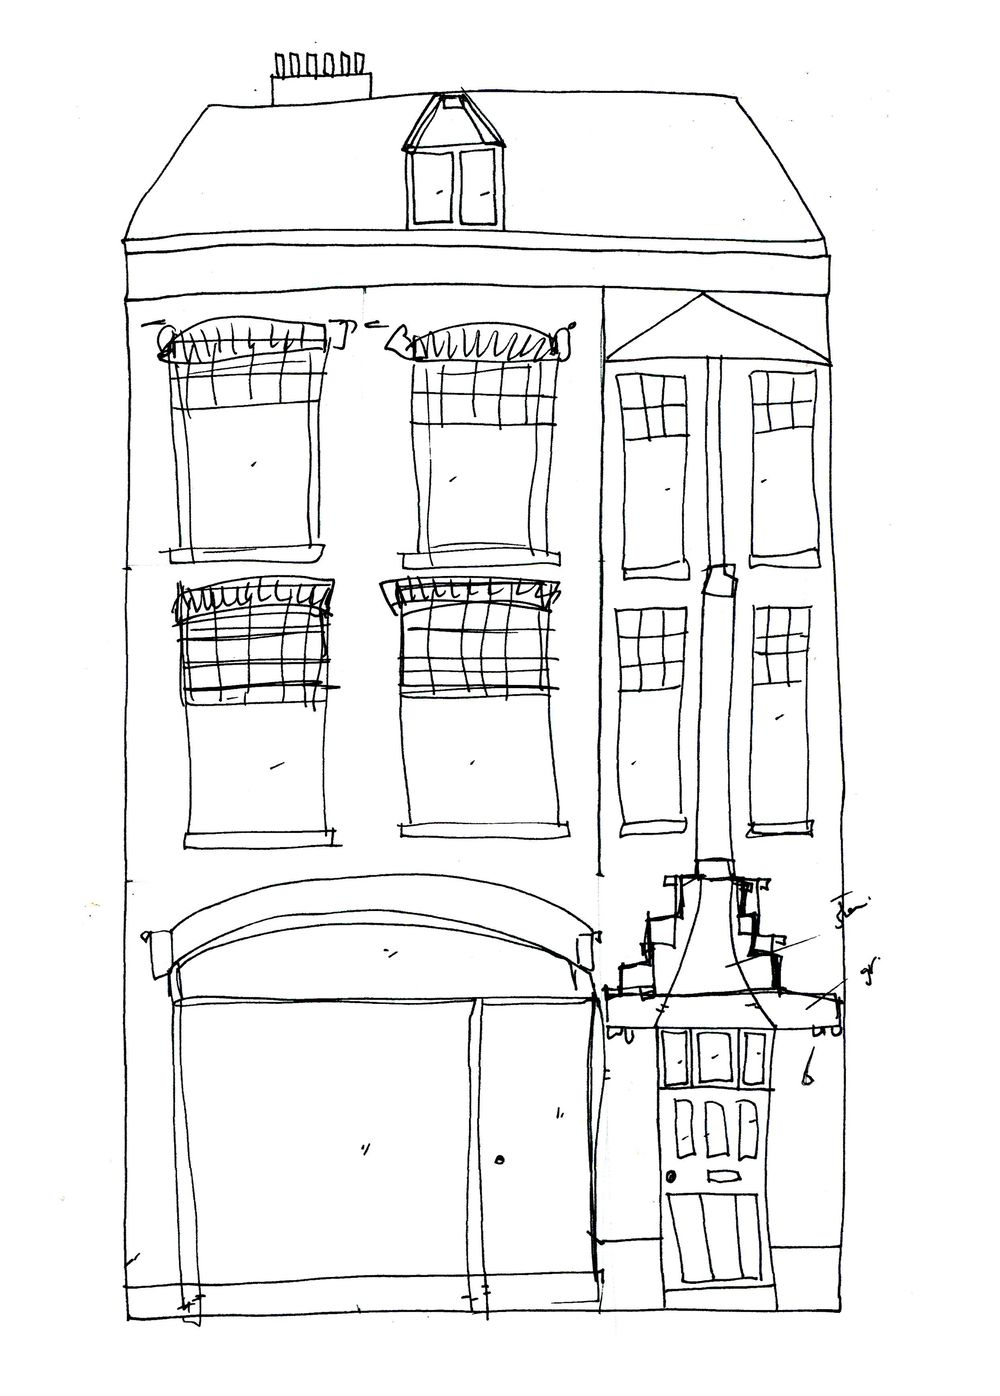 House in Amsterdam - image 1 - student project